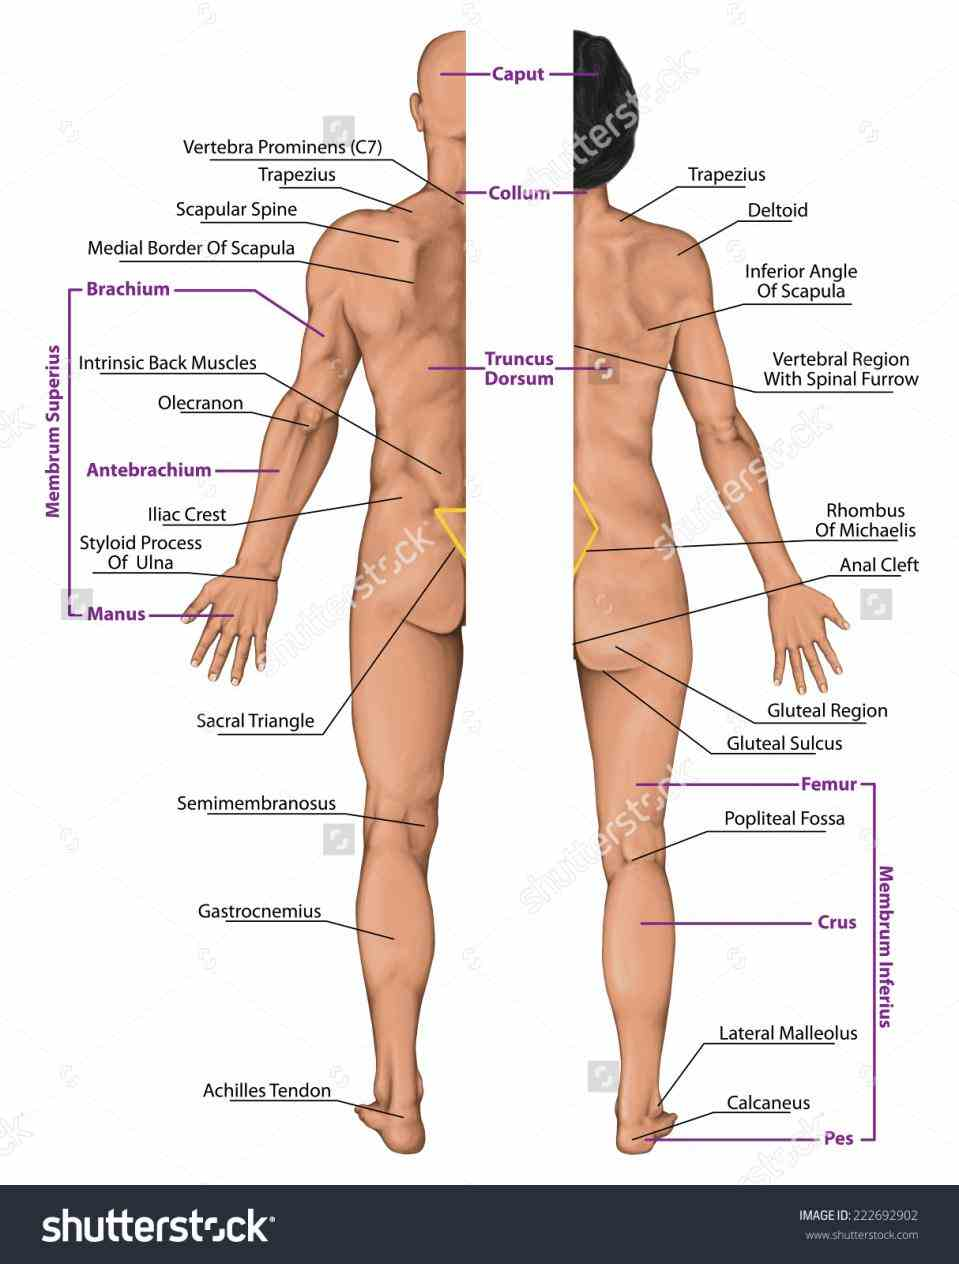 front posterior anterior portions learn Anterior And Posterior Parts Of The Body more about body planes and sections in